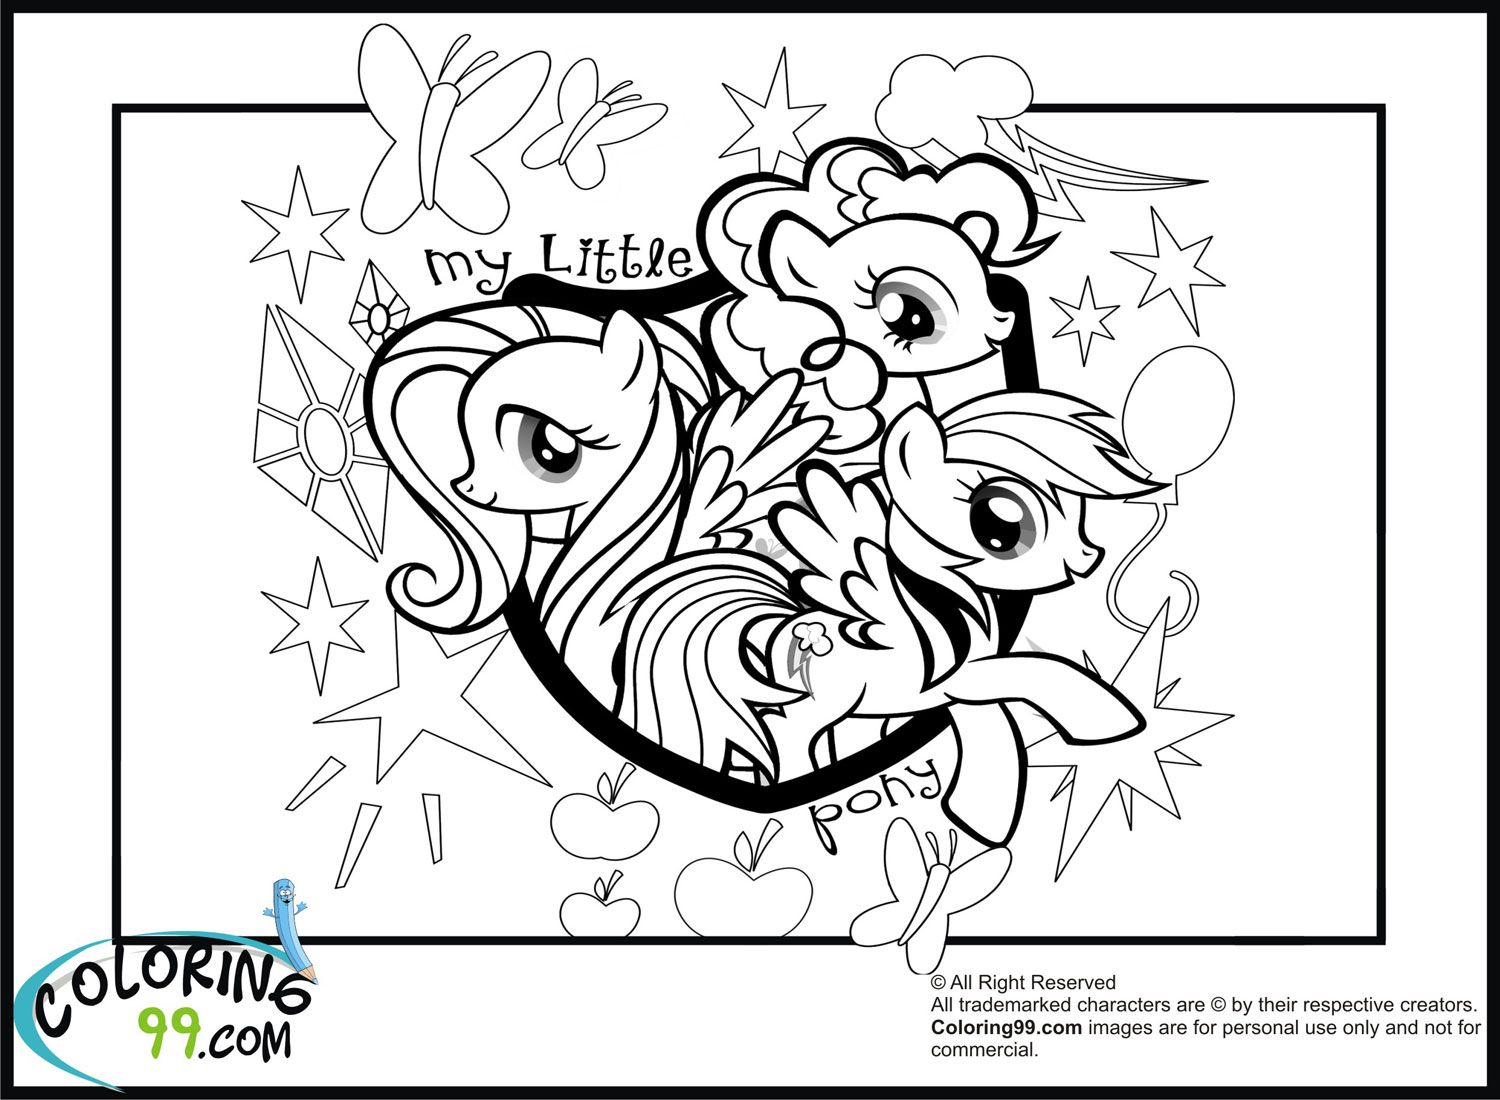 My Little Pony Coloring Pages To Print 1500×1100 Coloring